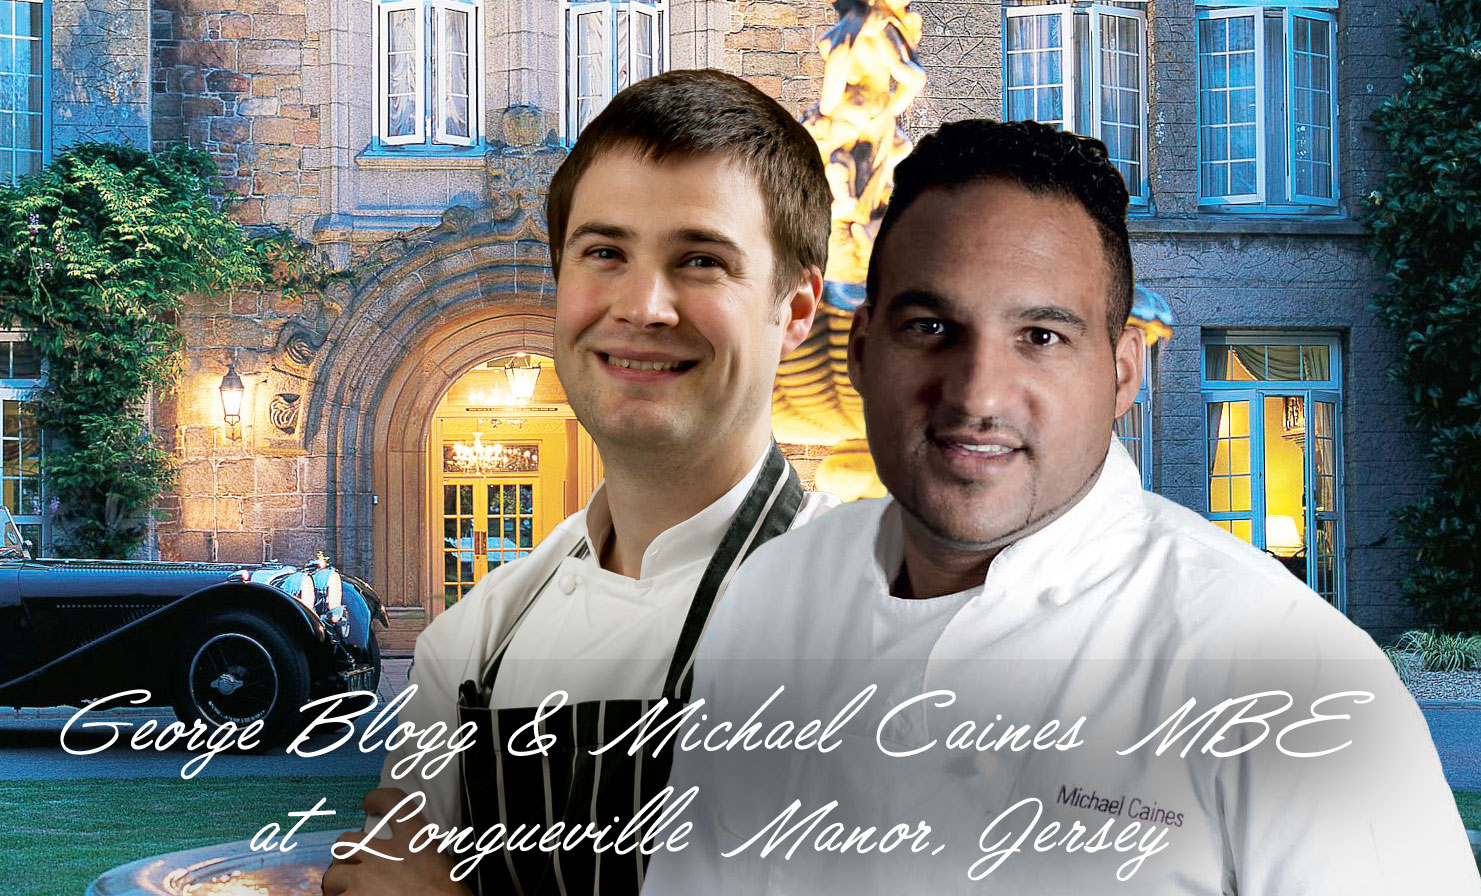 Longueville Manor, Jersey, Launches Guest Chef Series